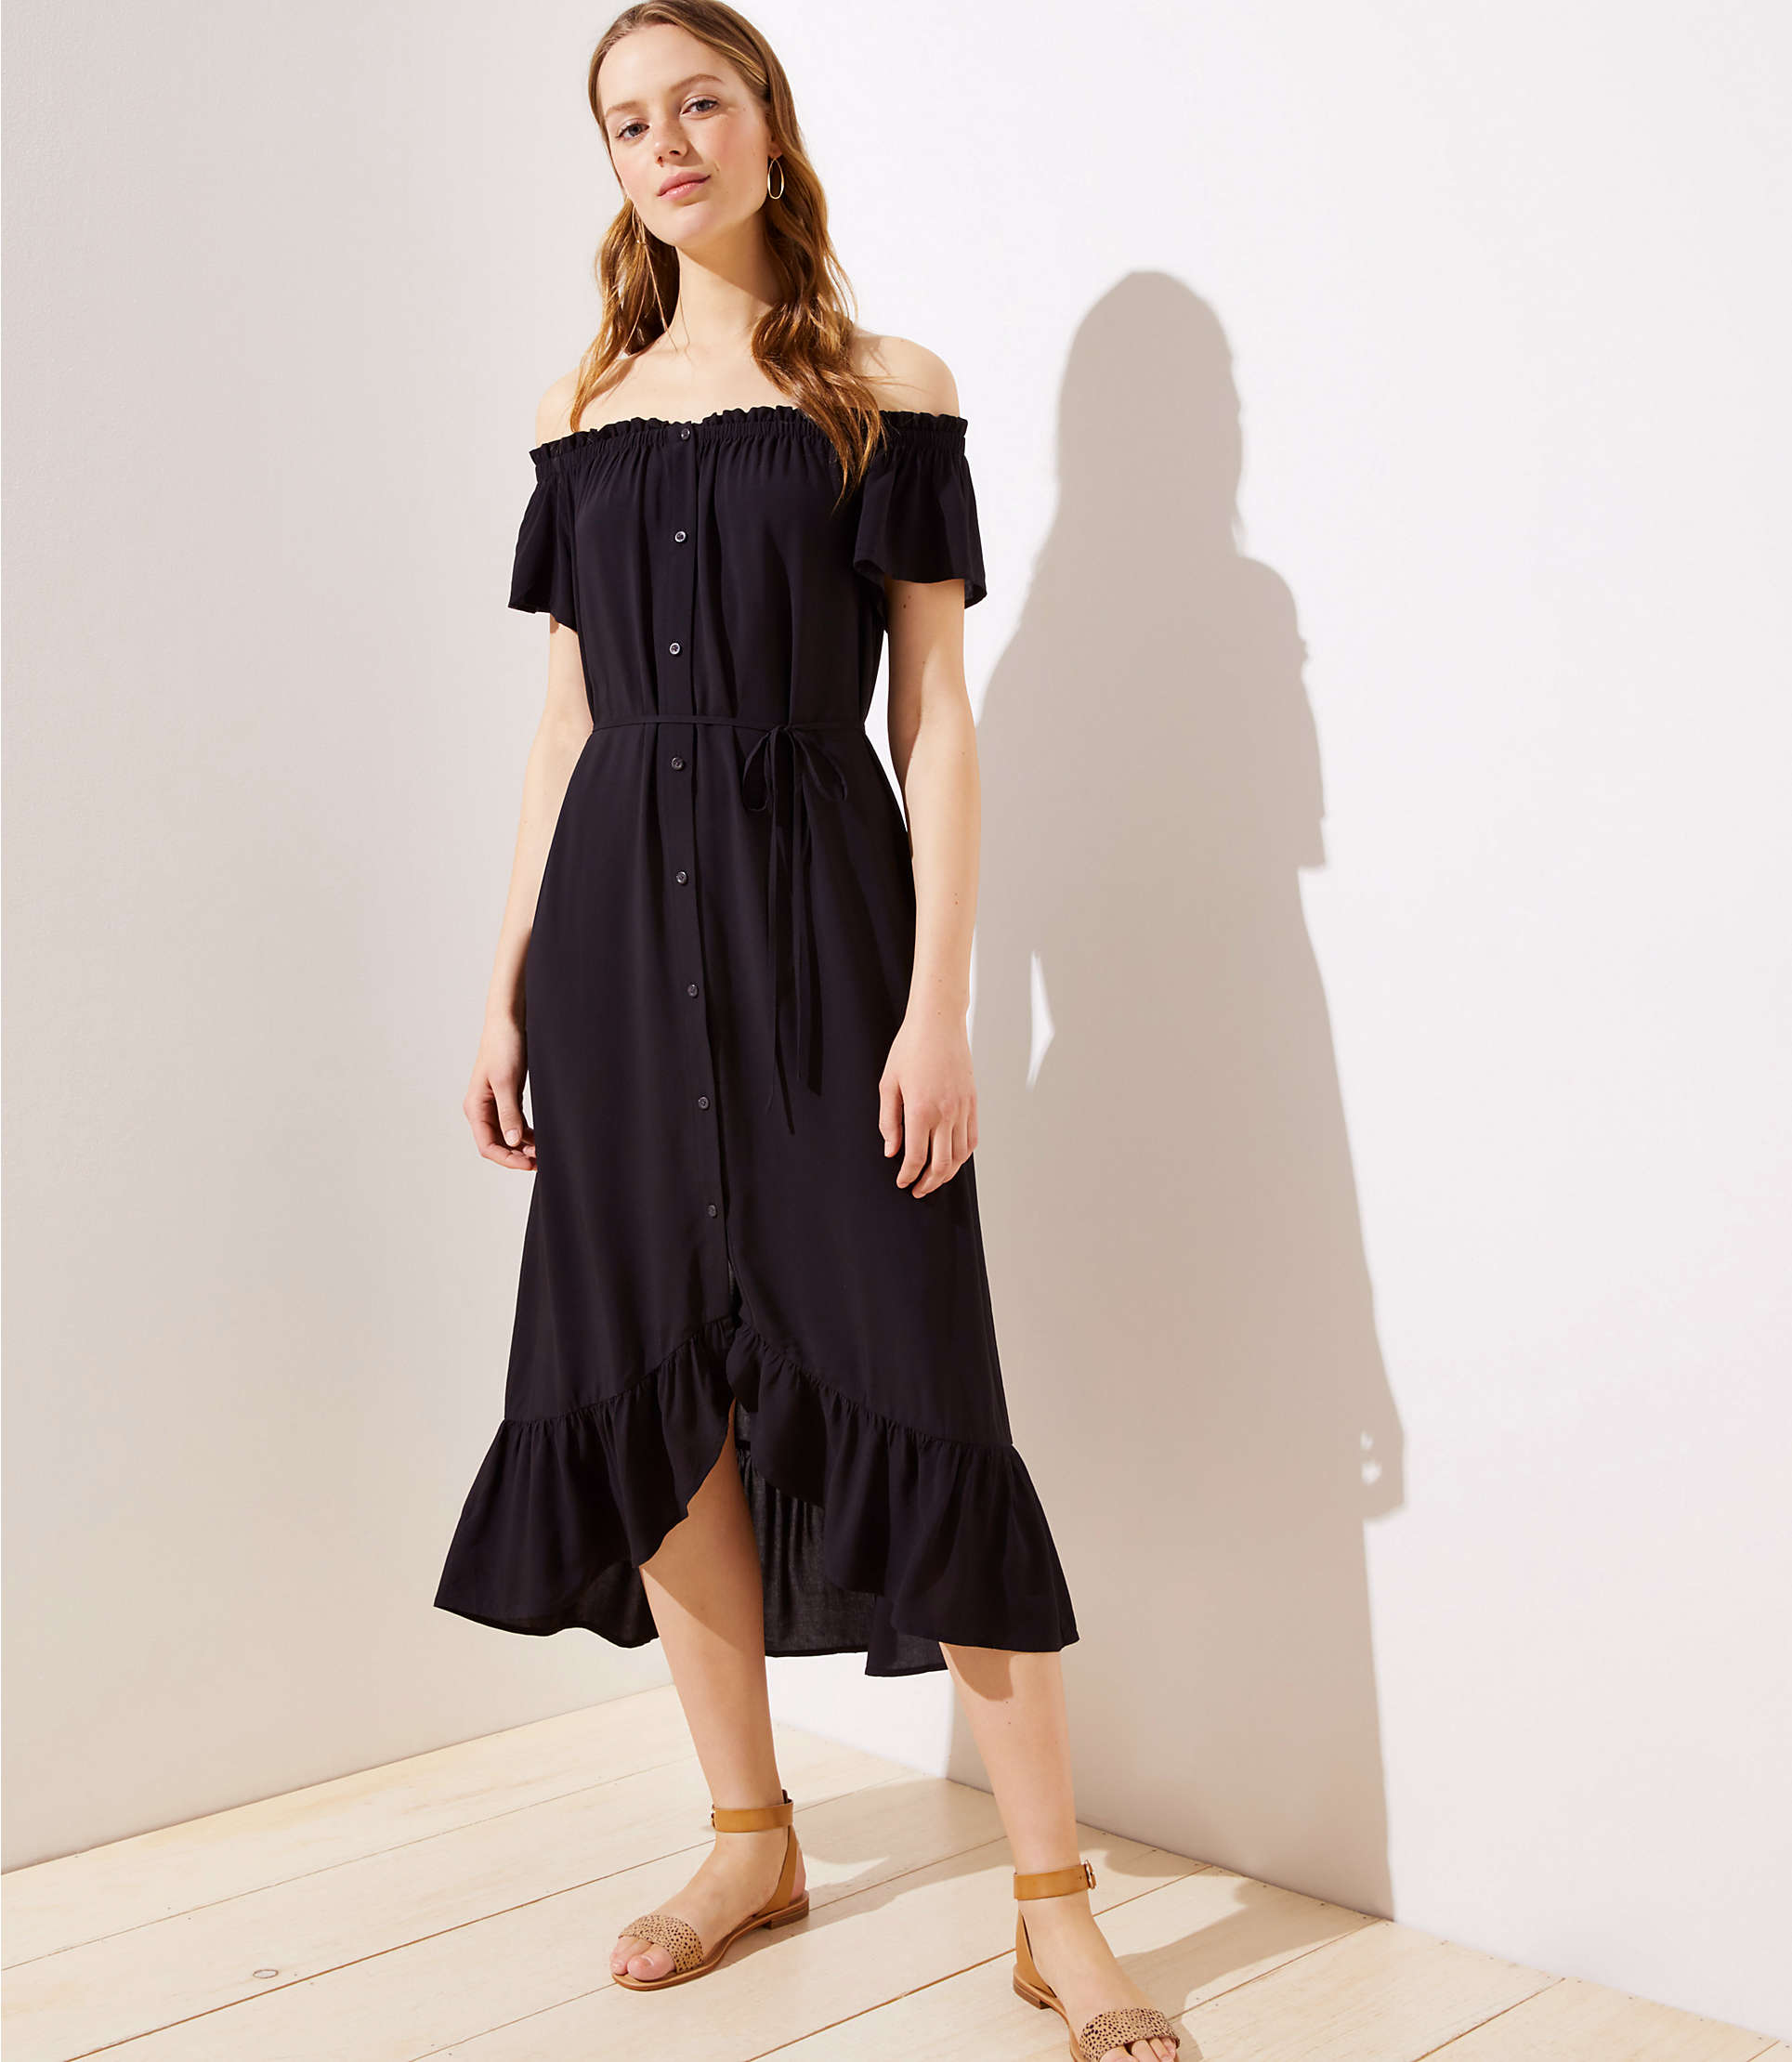 c7cec35e964a88 Petite Off The Shoulder Button Down Midi Dress. Hover to Zoom